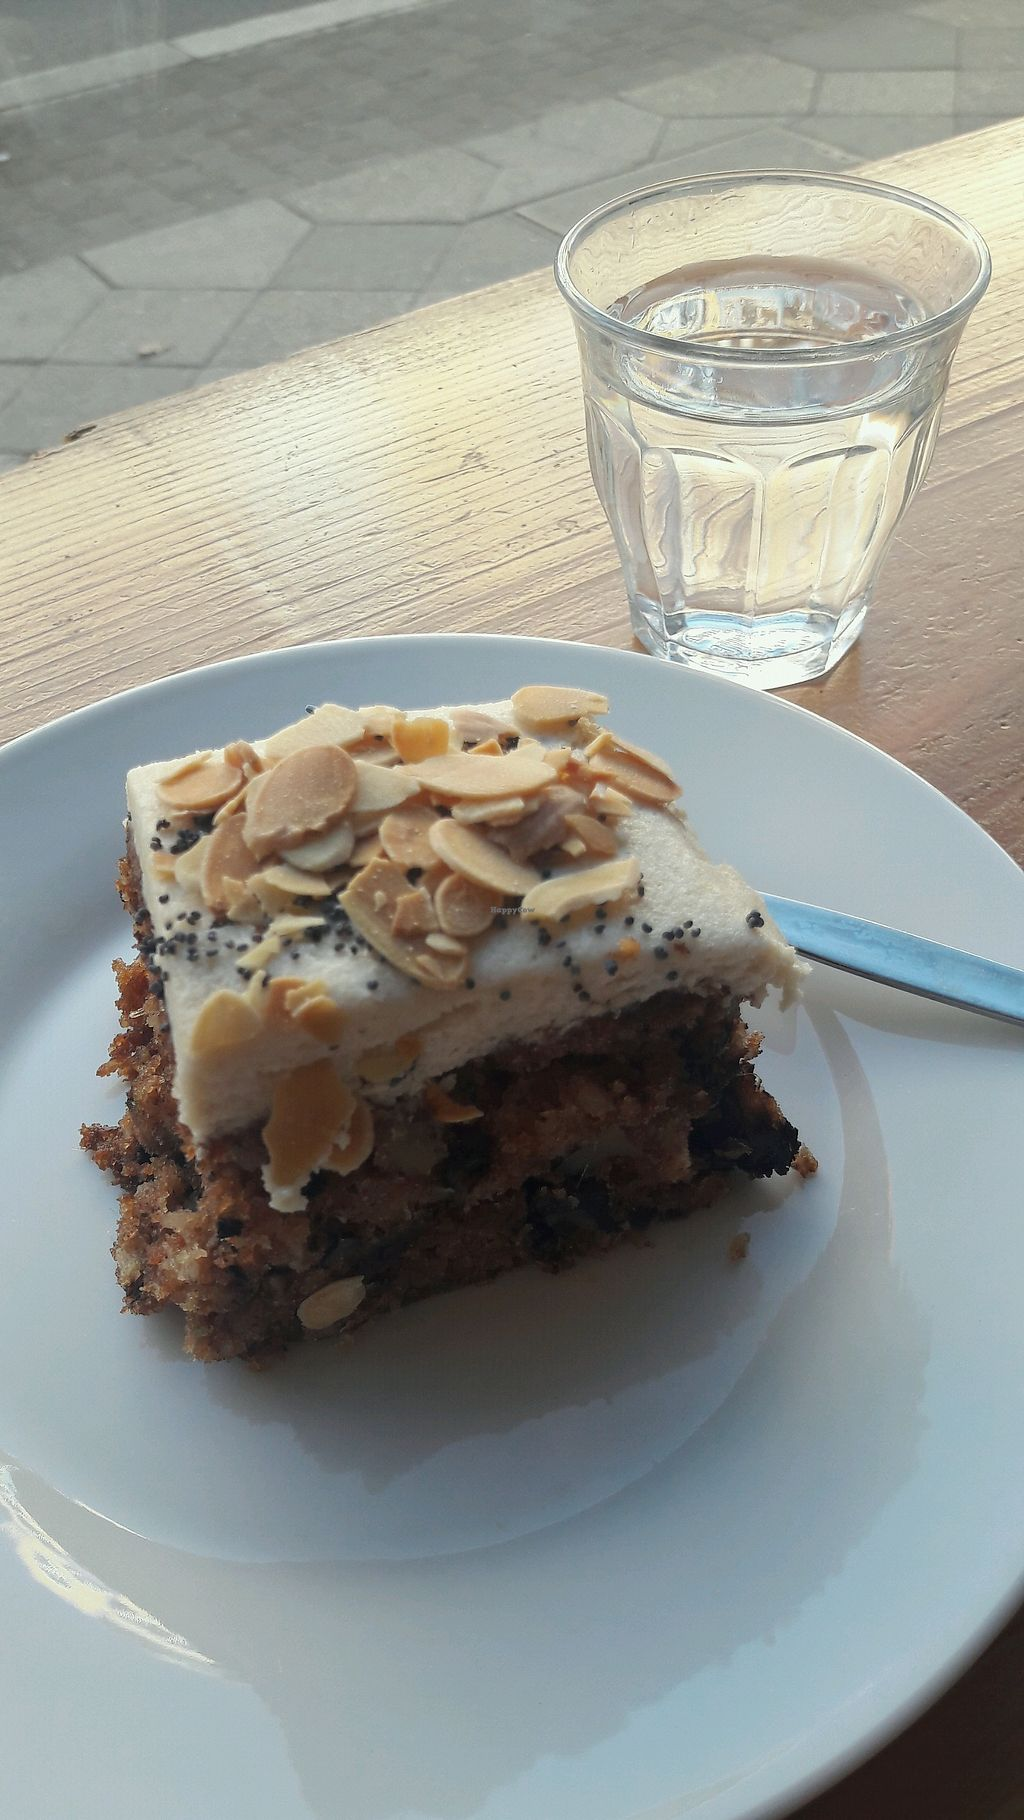 """Photo of Isla Coffee  by <a href=""""/members/profile/piffelina"""">piffelina</a> <br/>Vegan carrot cake <br/> April 22, 2018  - <a href='/contact/abuse/image/80634/389466'>Report</a>"""